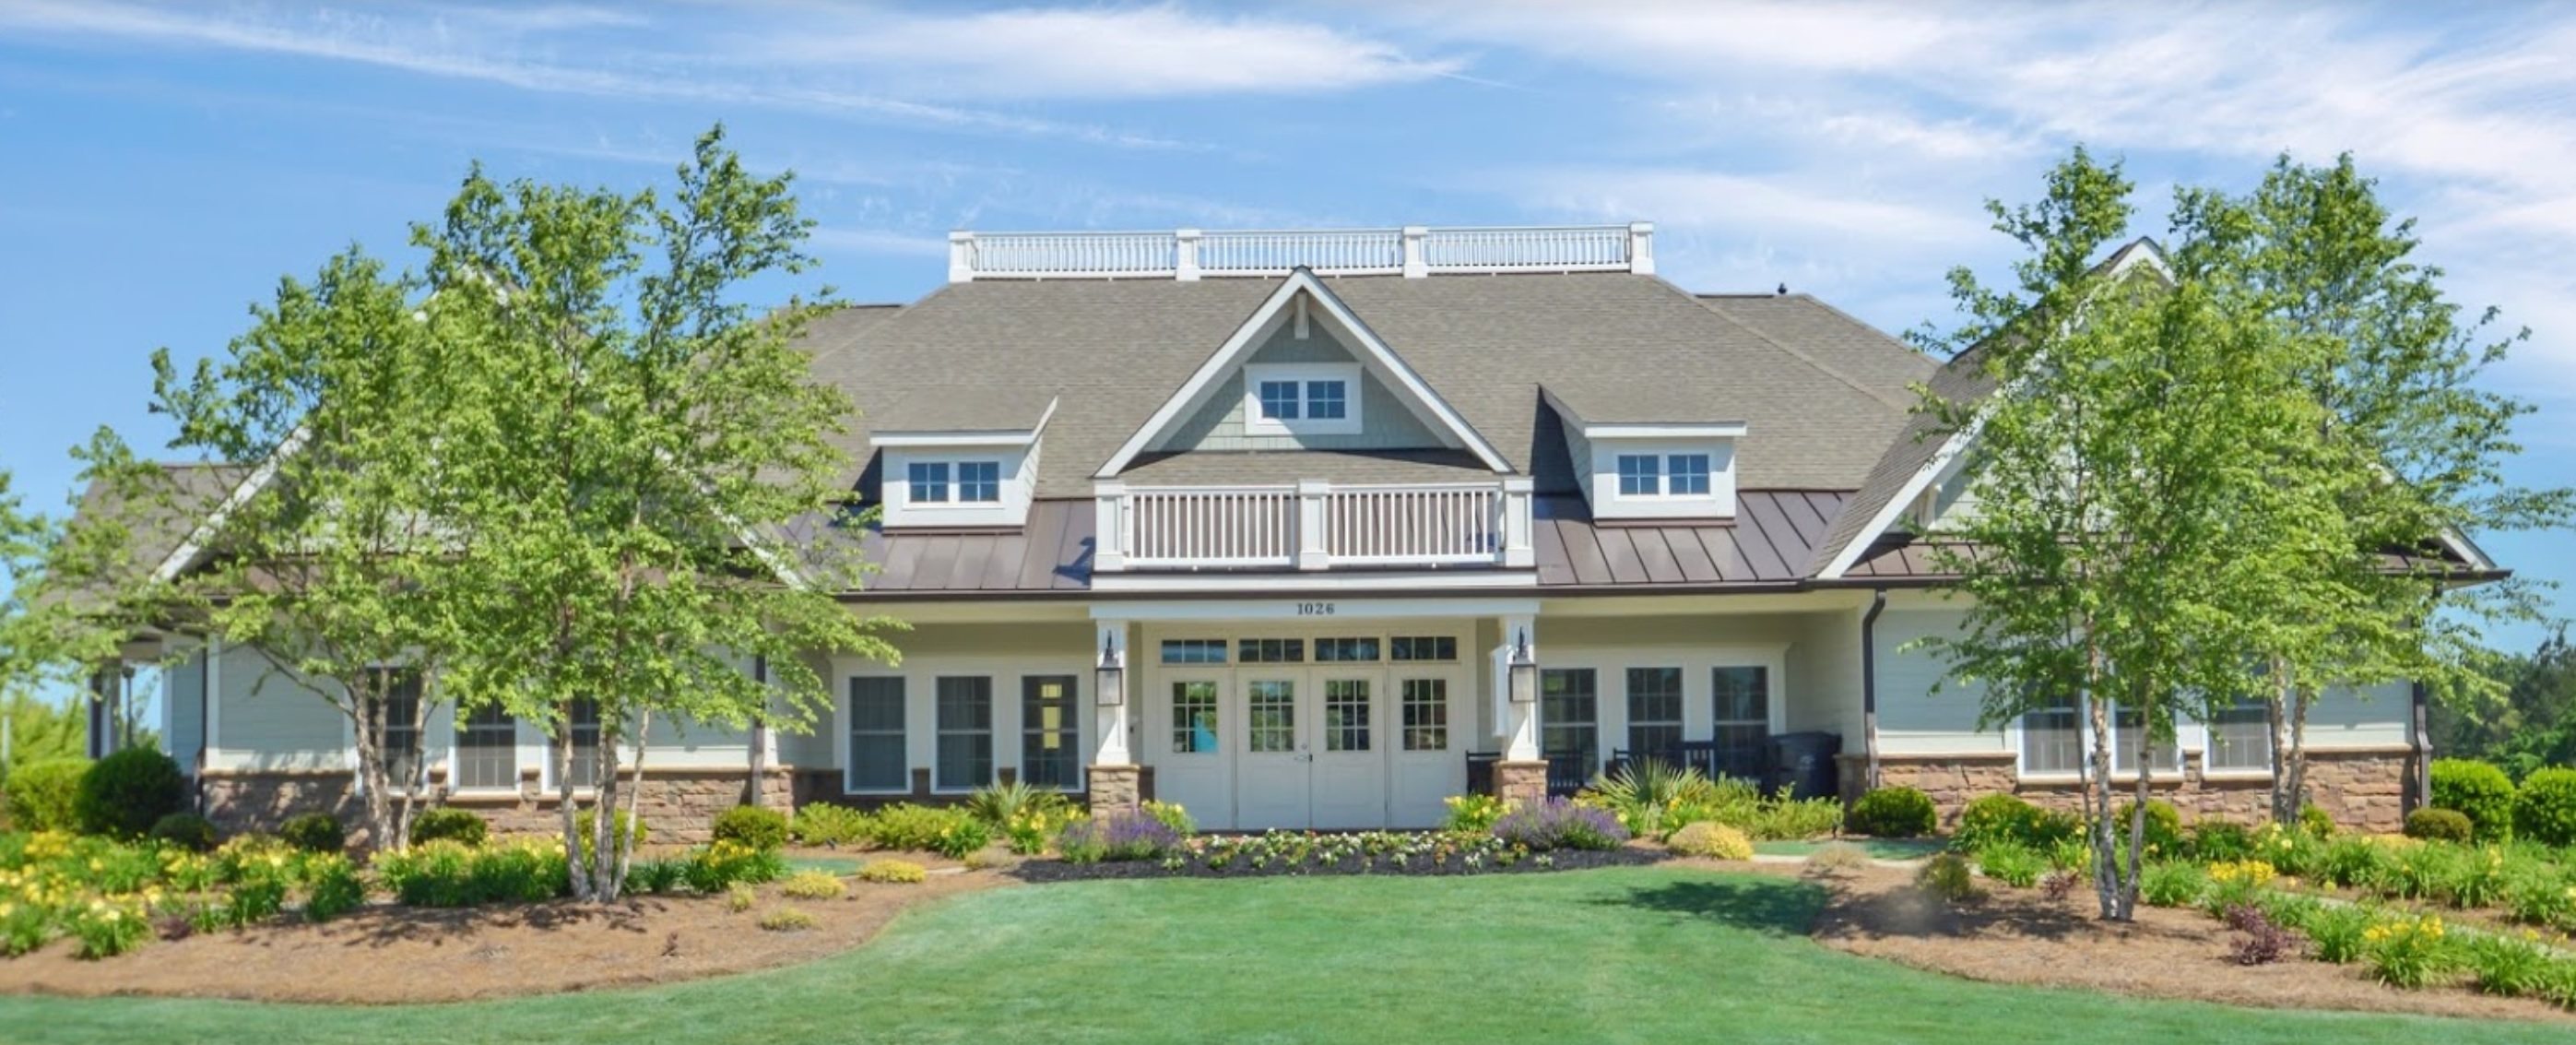 Walnut Creek Clubhouse In Indian Land SC